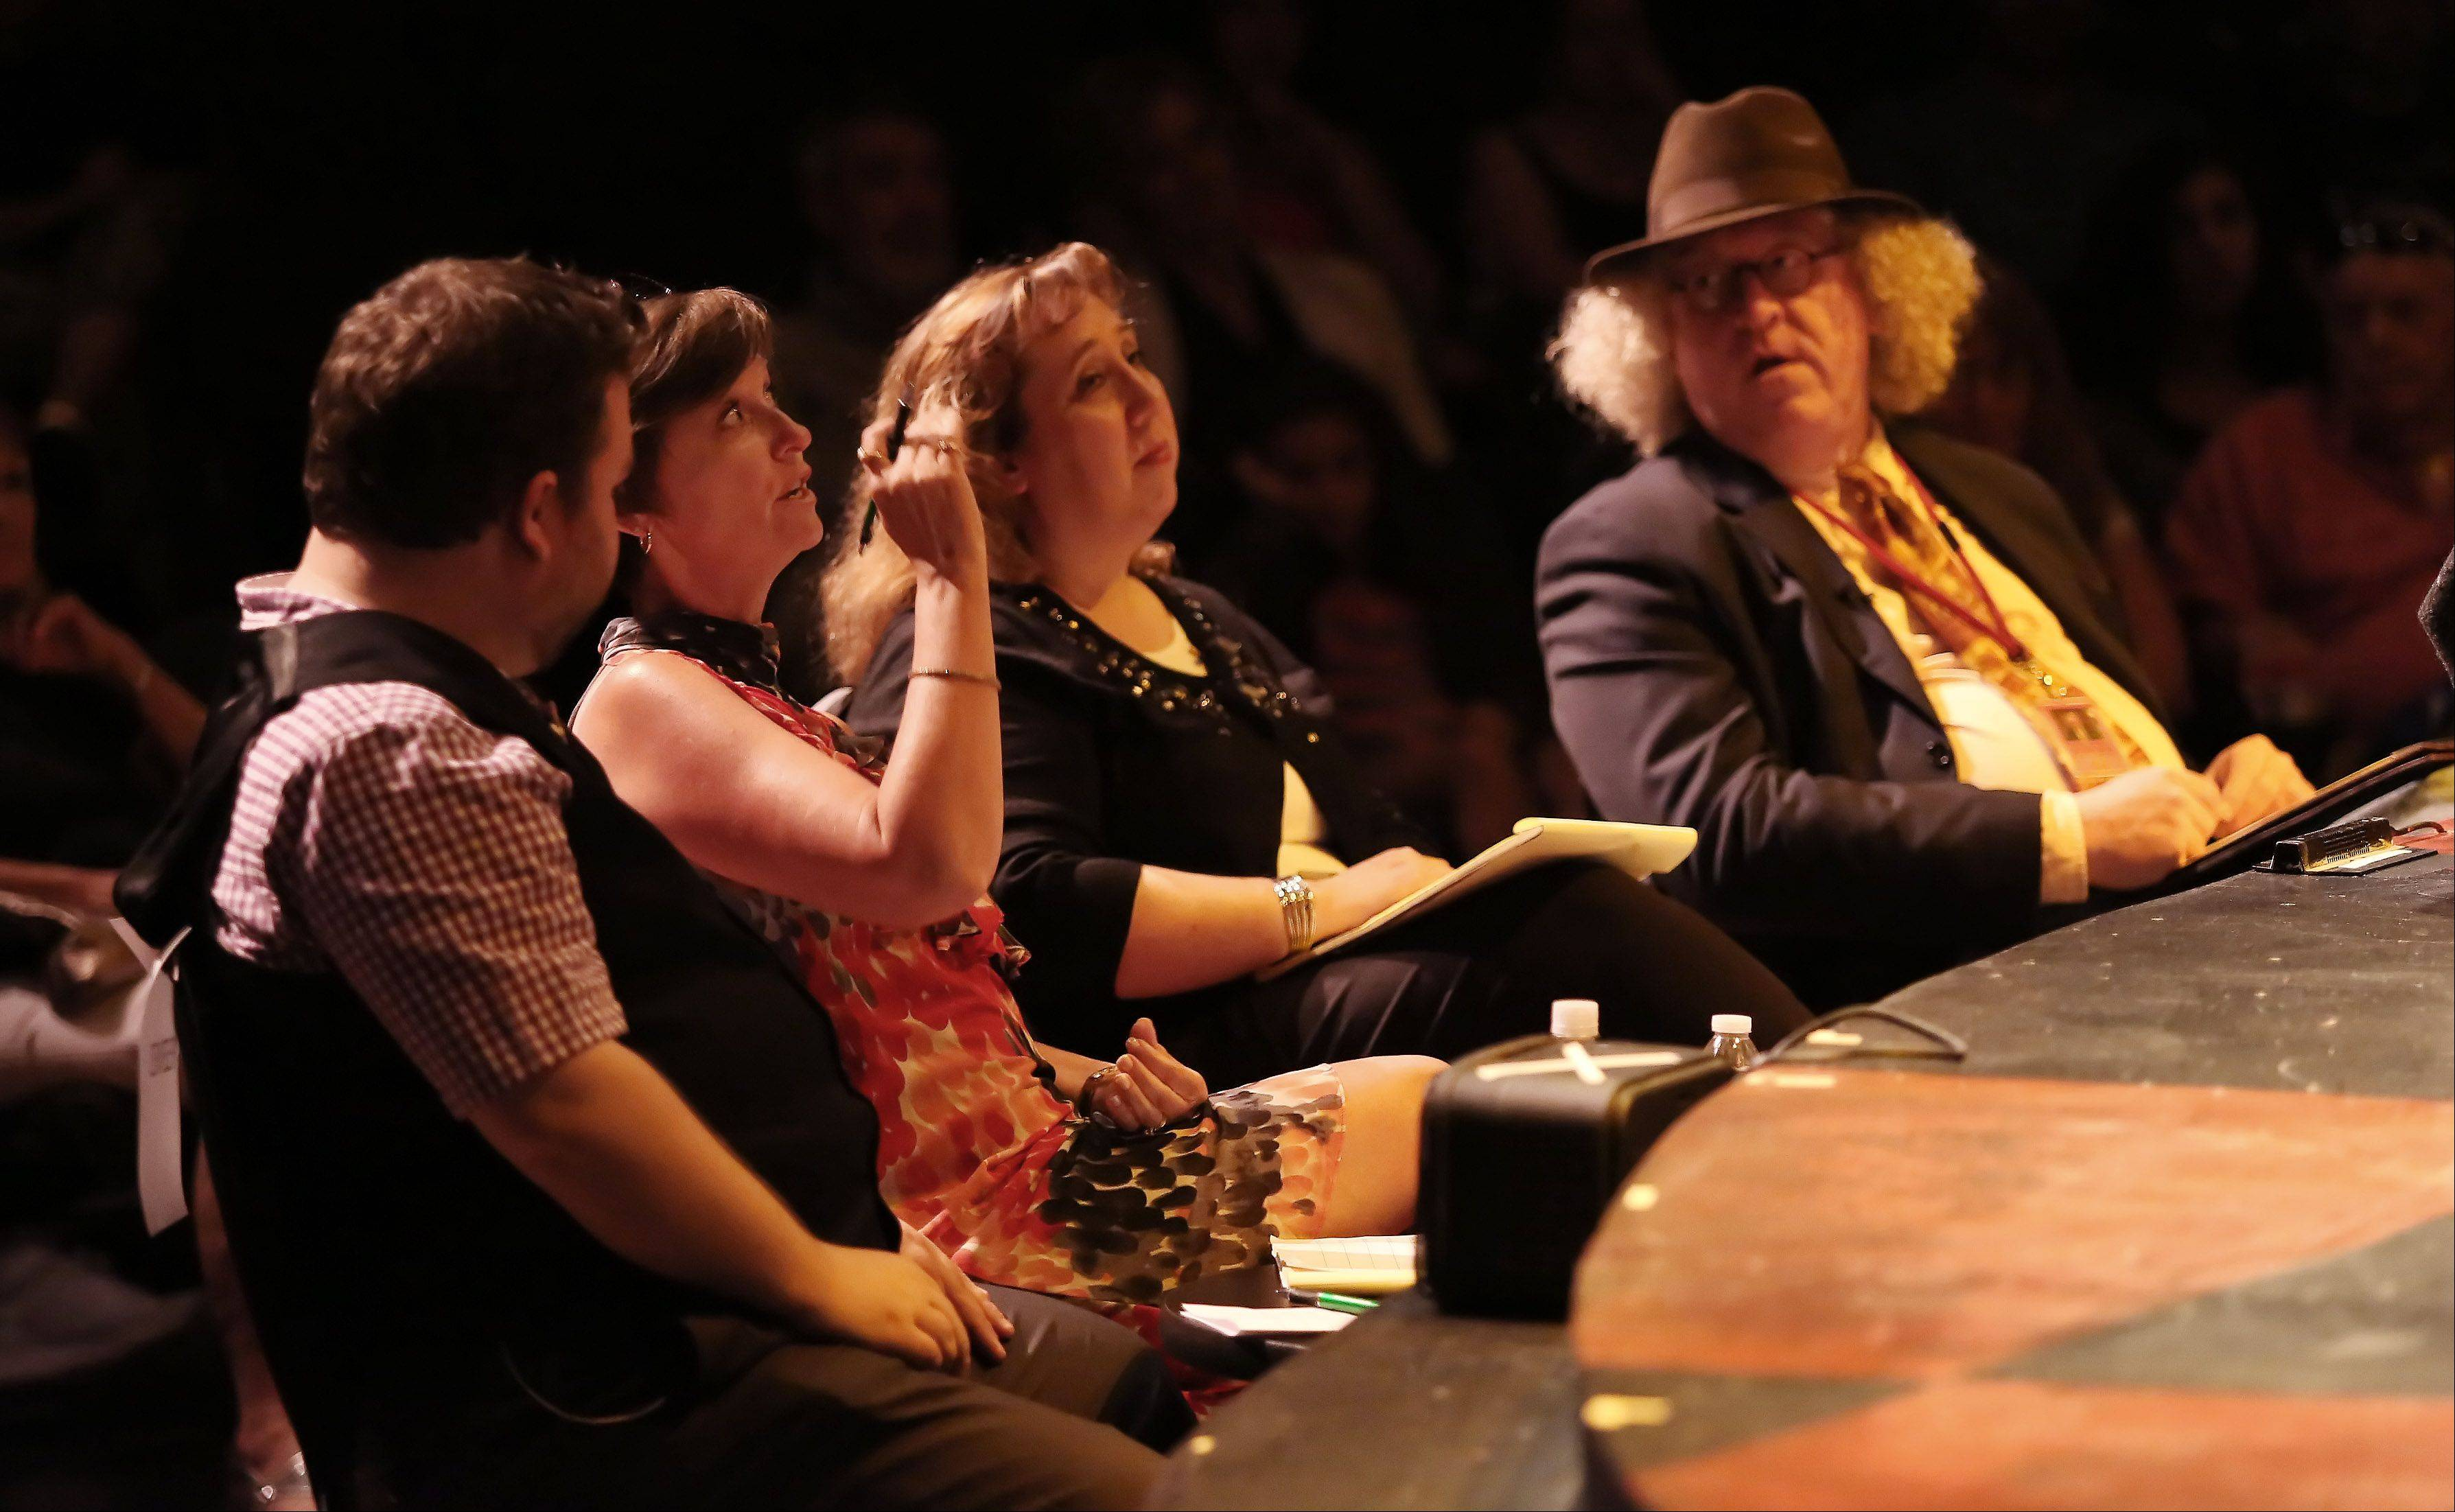 Talent judges Micky York, left, Connie Canaday Howard, Barbara Vitello, and Charlie Beck reflect on an act during the first round of the finalists for Suburban Chicago's Got Talent competition Sunday night at the Metropolis Performing Arts Centre in Arlington Heights. The summer-long talent contest is presented by the Daily Herald and sponsored by the Arlington Heights Chamber of Commerce.